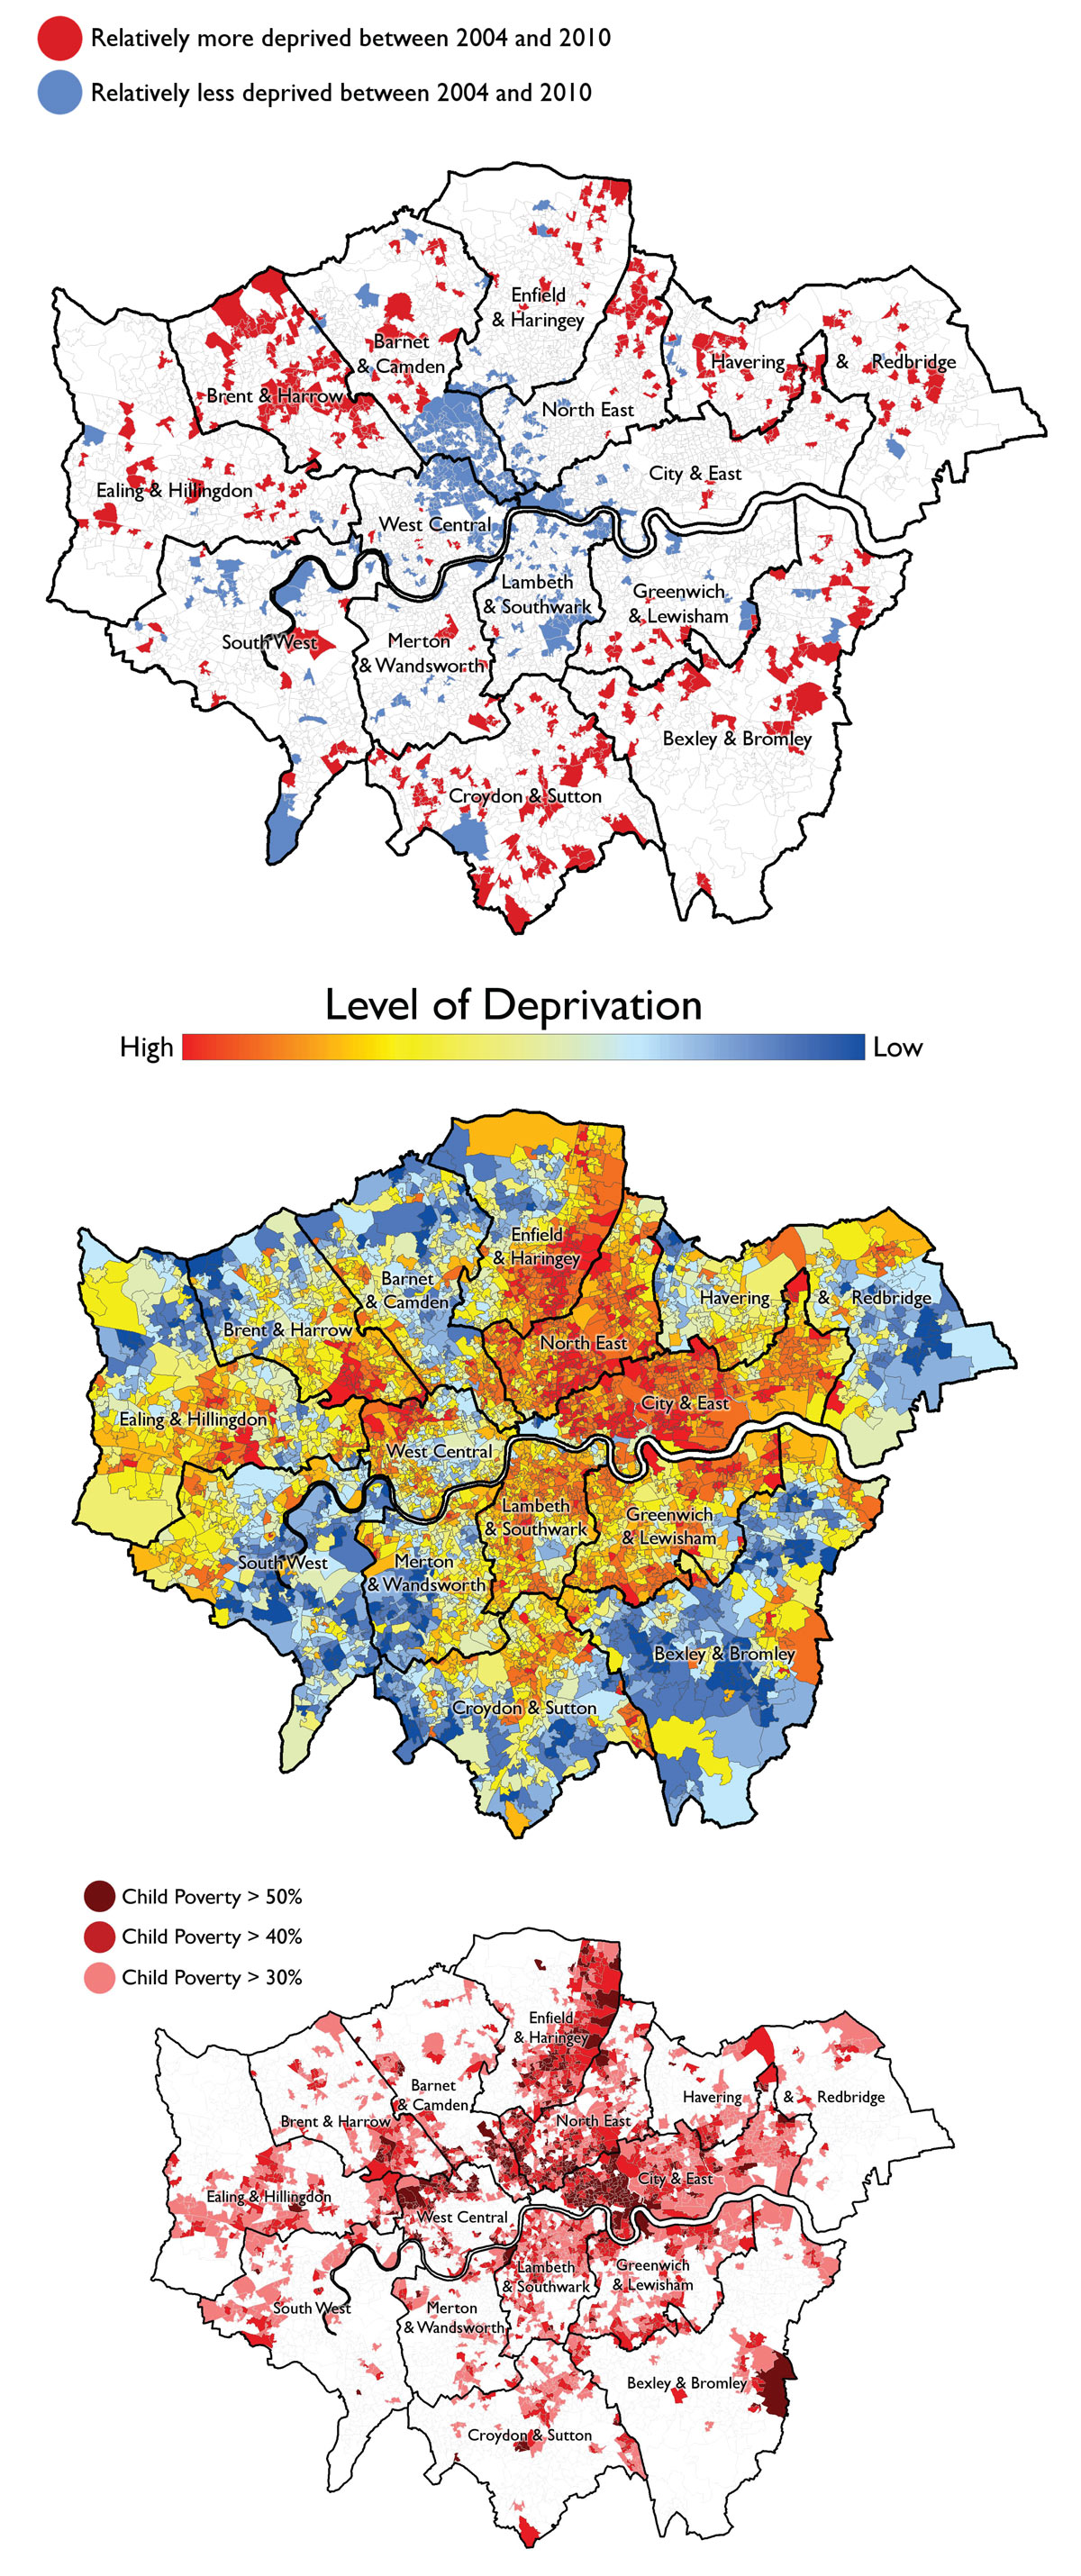 Map London Neighborhoods.Deprivation And Poverty In London Get The Data Uk News